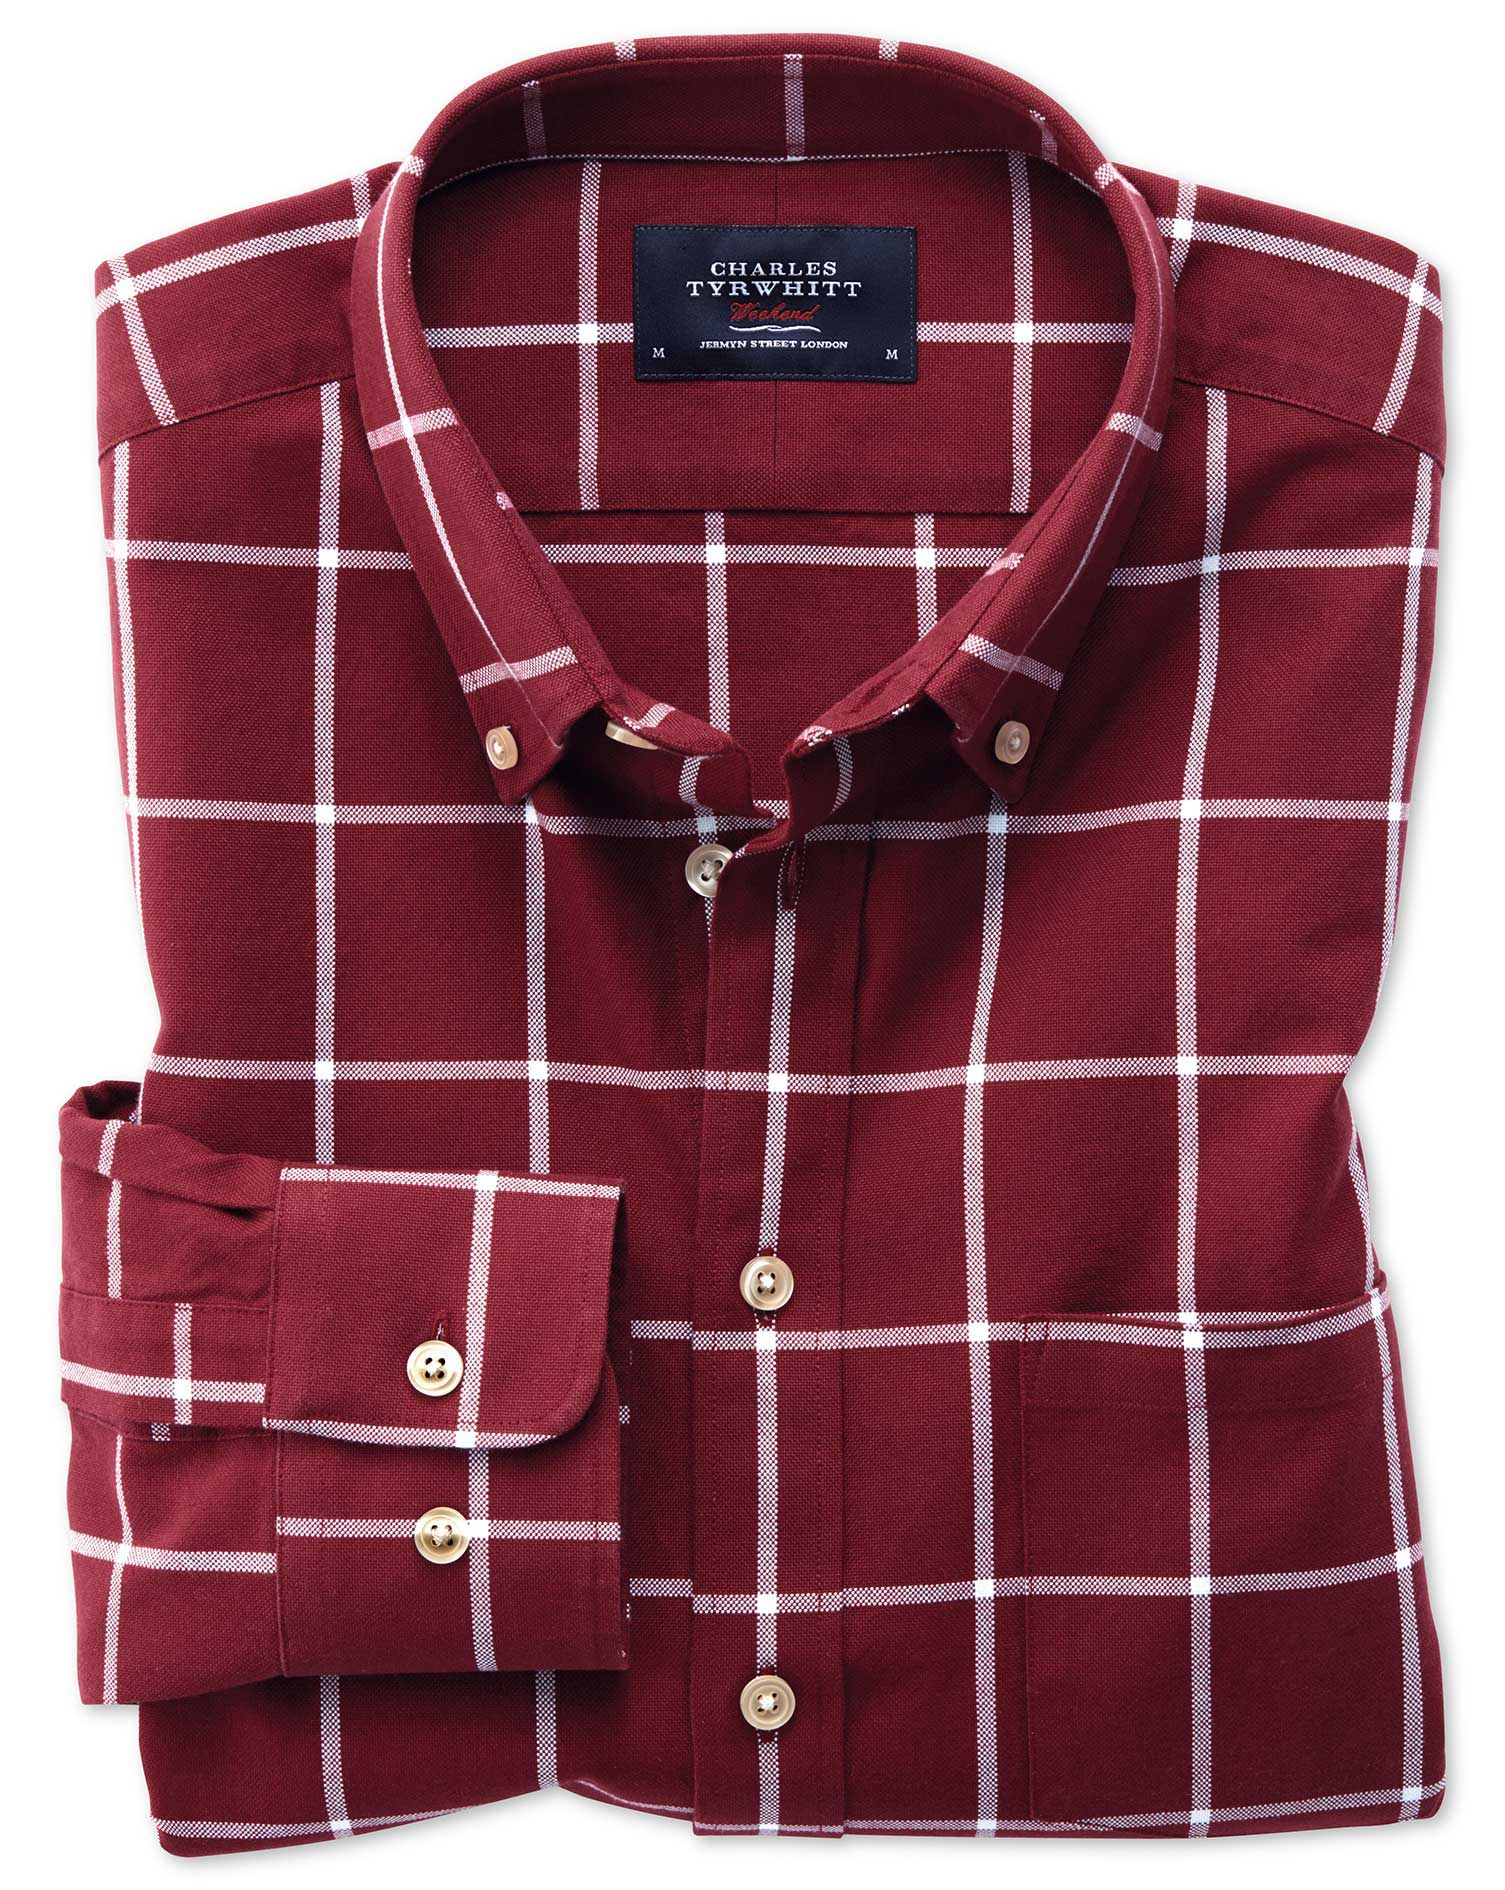 Slim Fit Button-Down Washed Oxford Burgundy and White Check Cotton Shirt Single Cuff Size Medium by